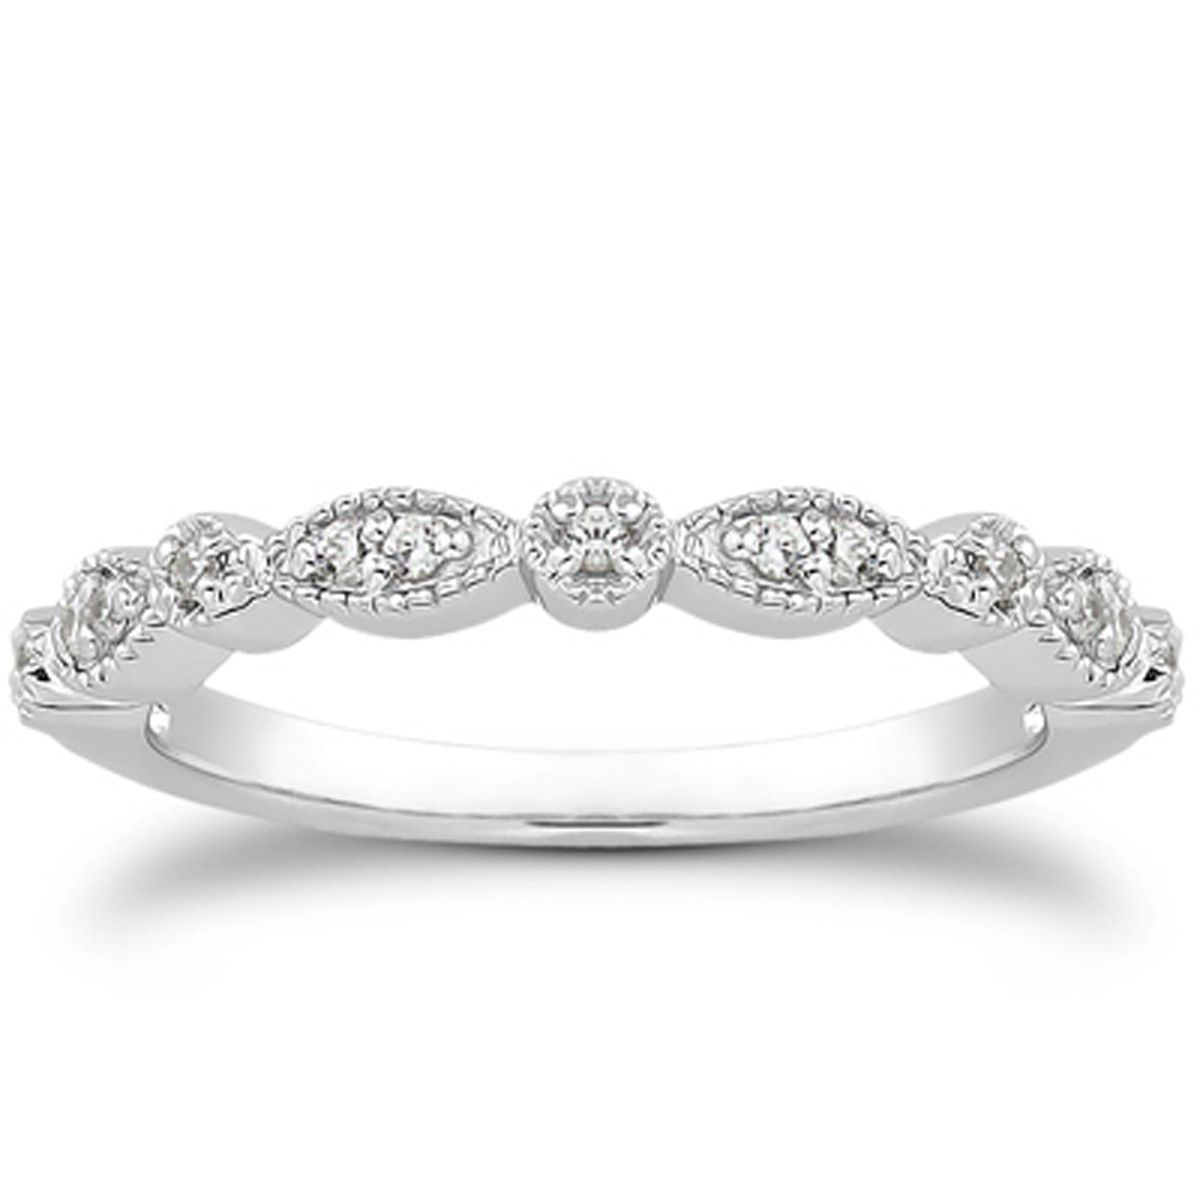 bands band diamond pave bridal two huffords row wedding jewelry